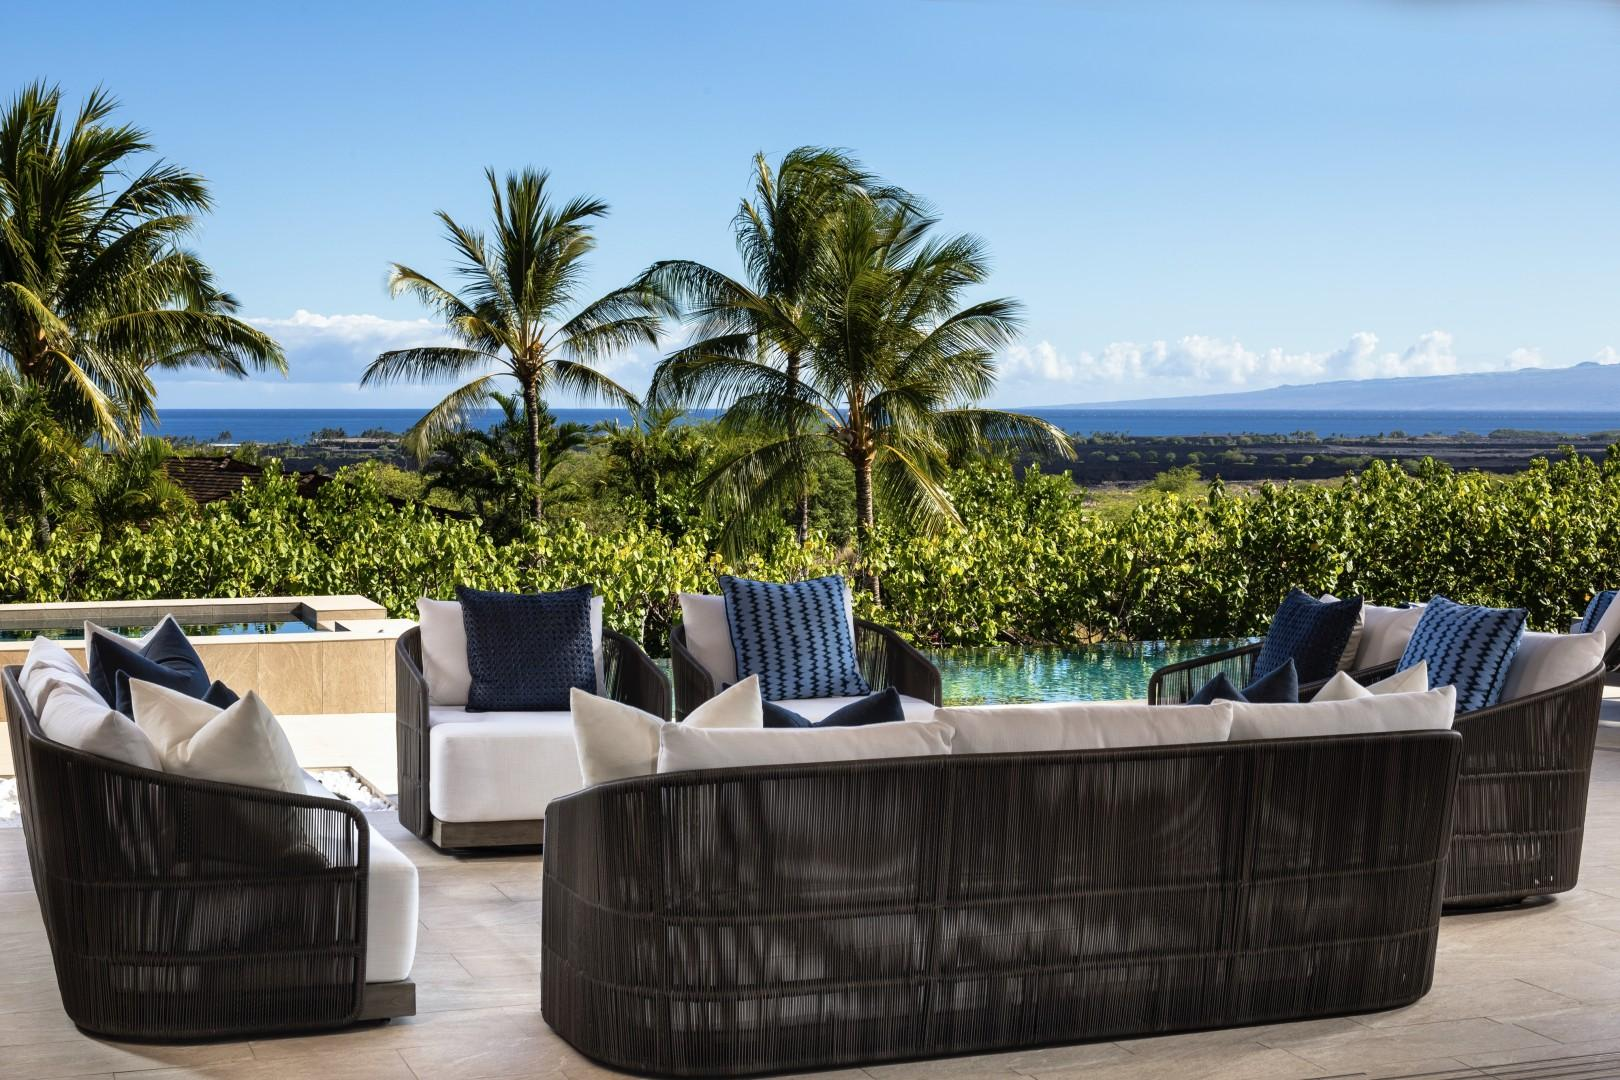 Close-up view of graceful and comfortable lanai seating.